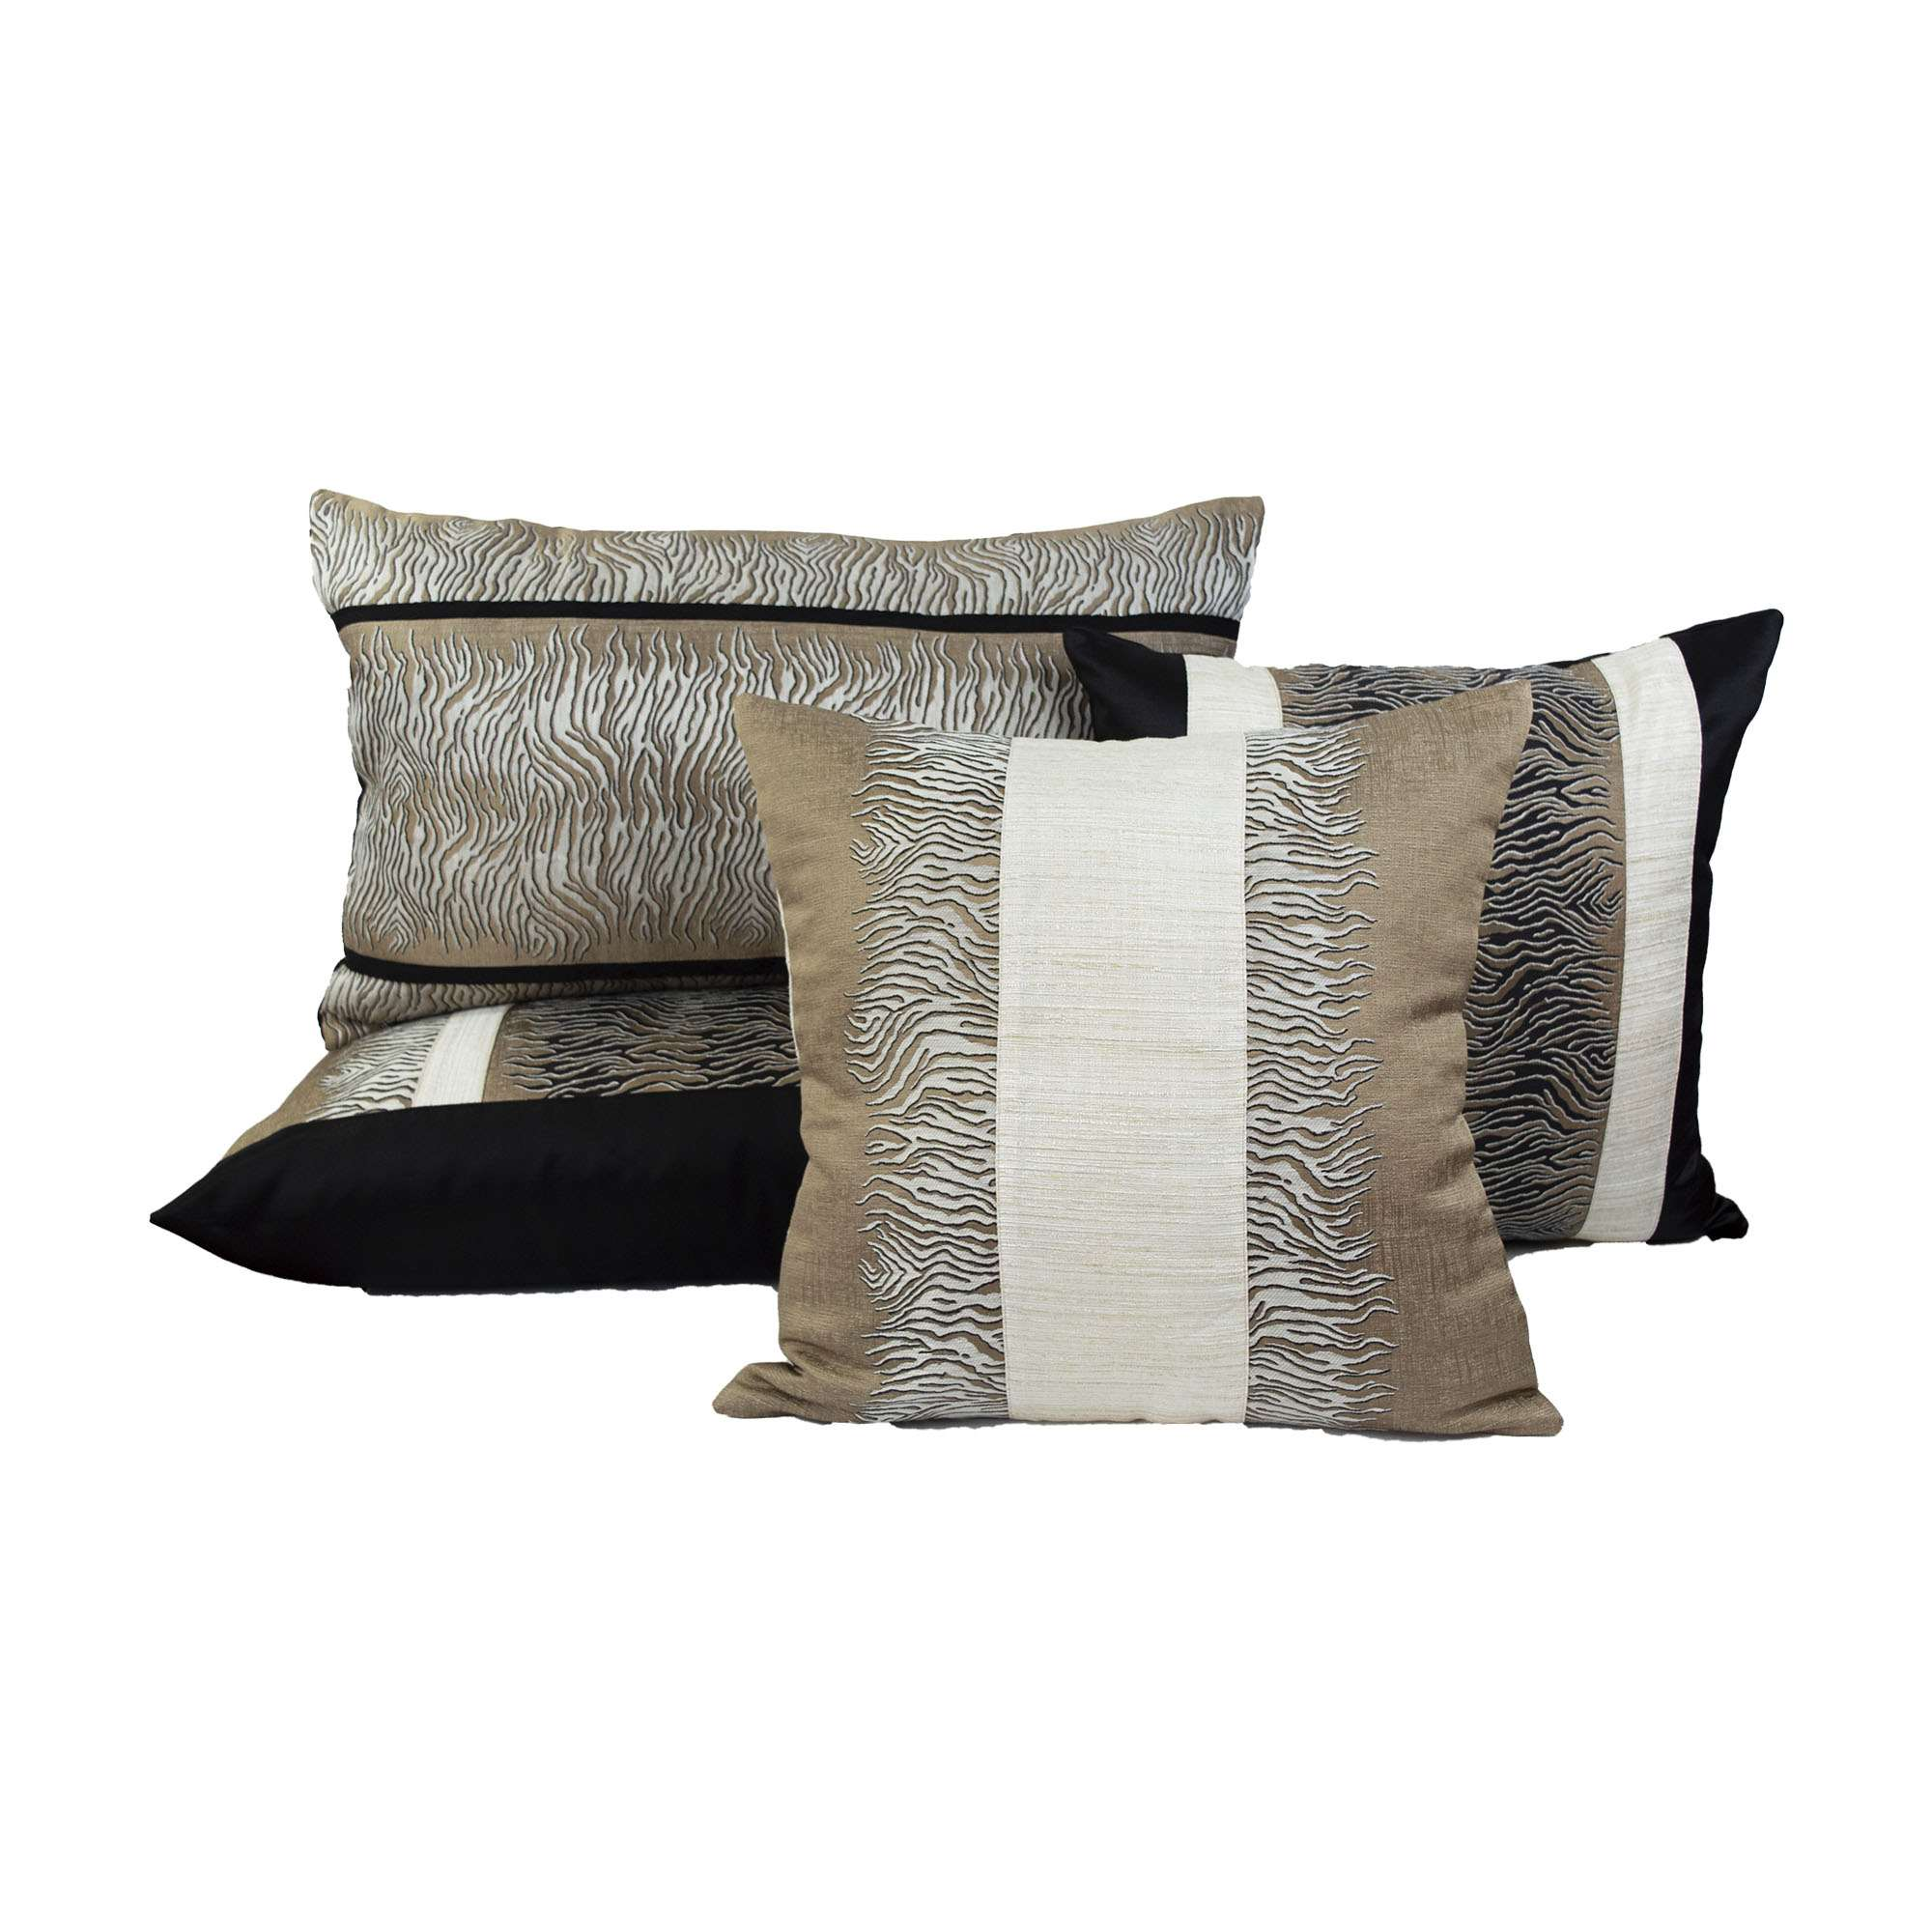 Cuscini Design.Set Cuscini Design Animalier Nero E Beige Tina Codazzo Home